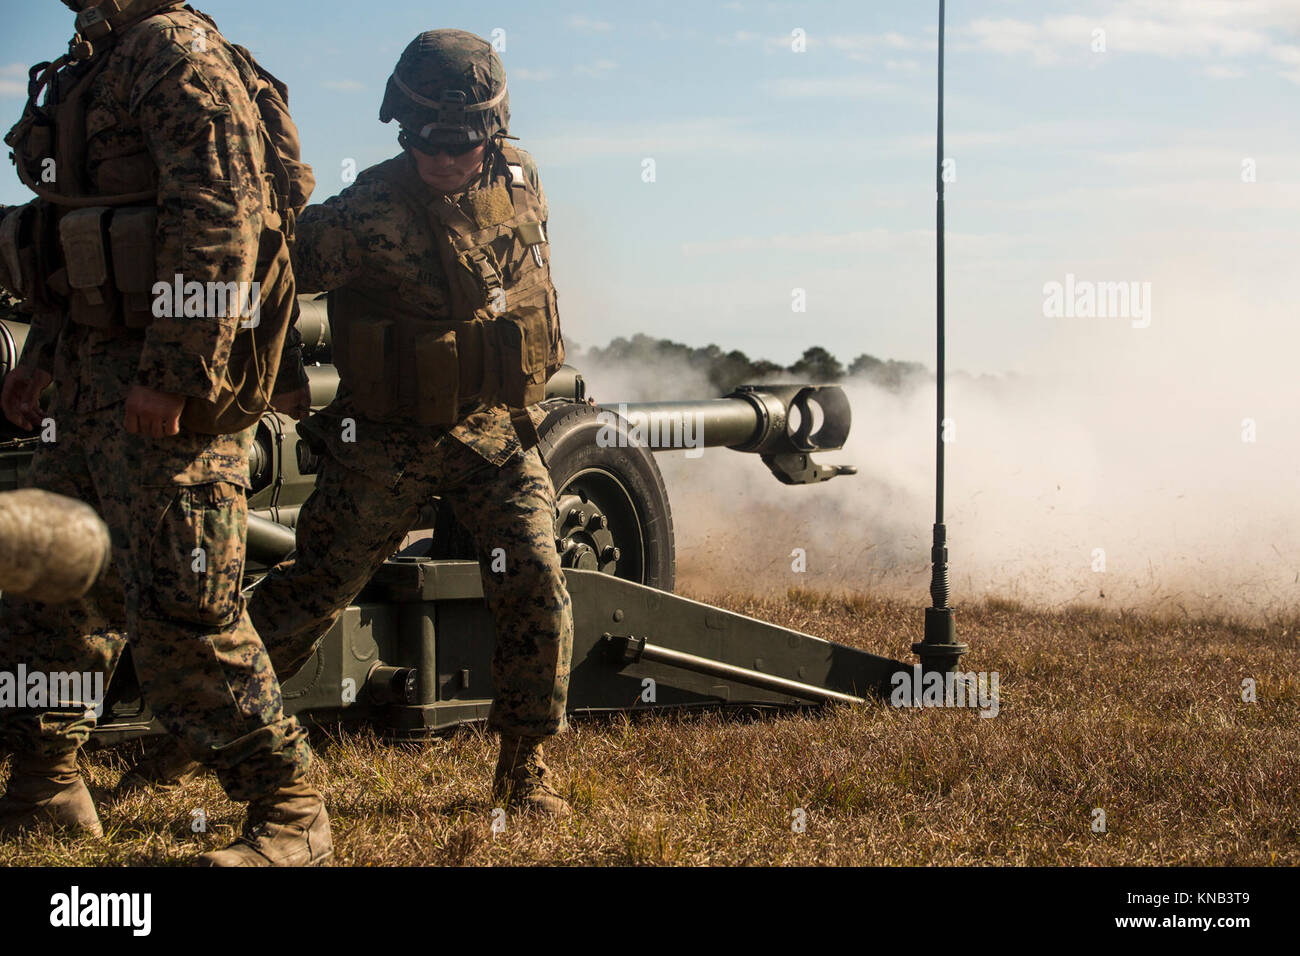 M777 howitzer stock photos m777 howitzer stock images for Direct flame